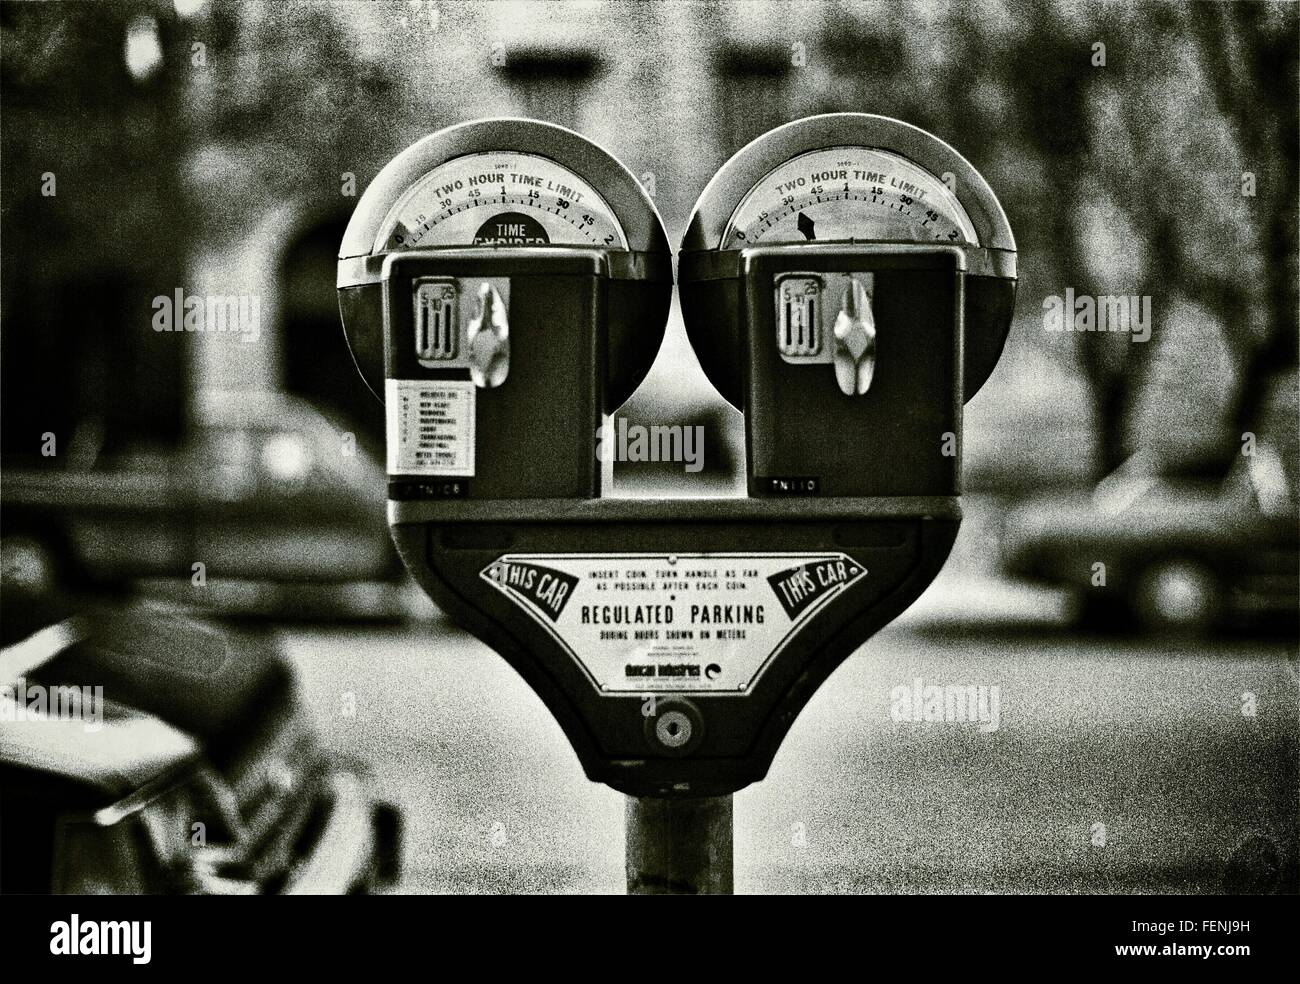 Close Up Of Parking Meter - Stock Image